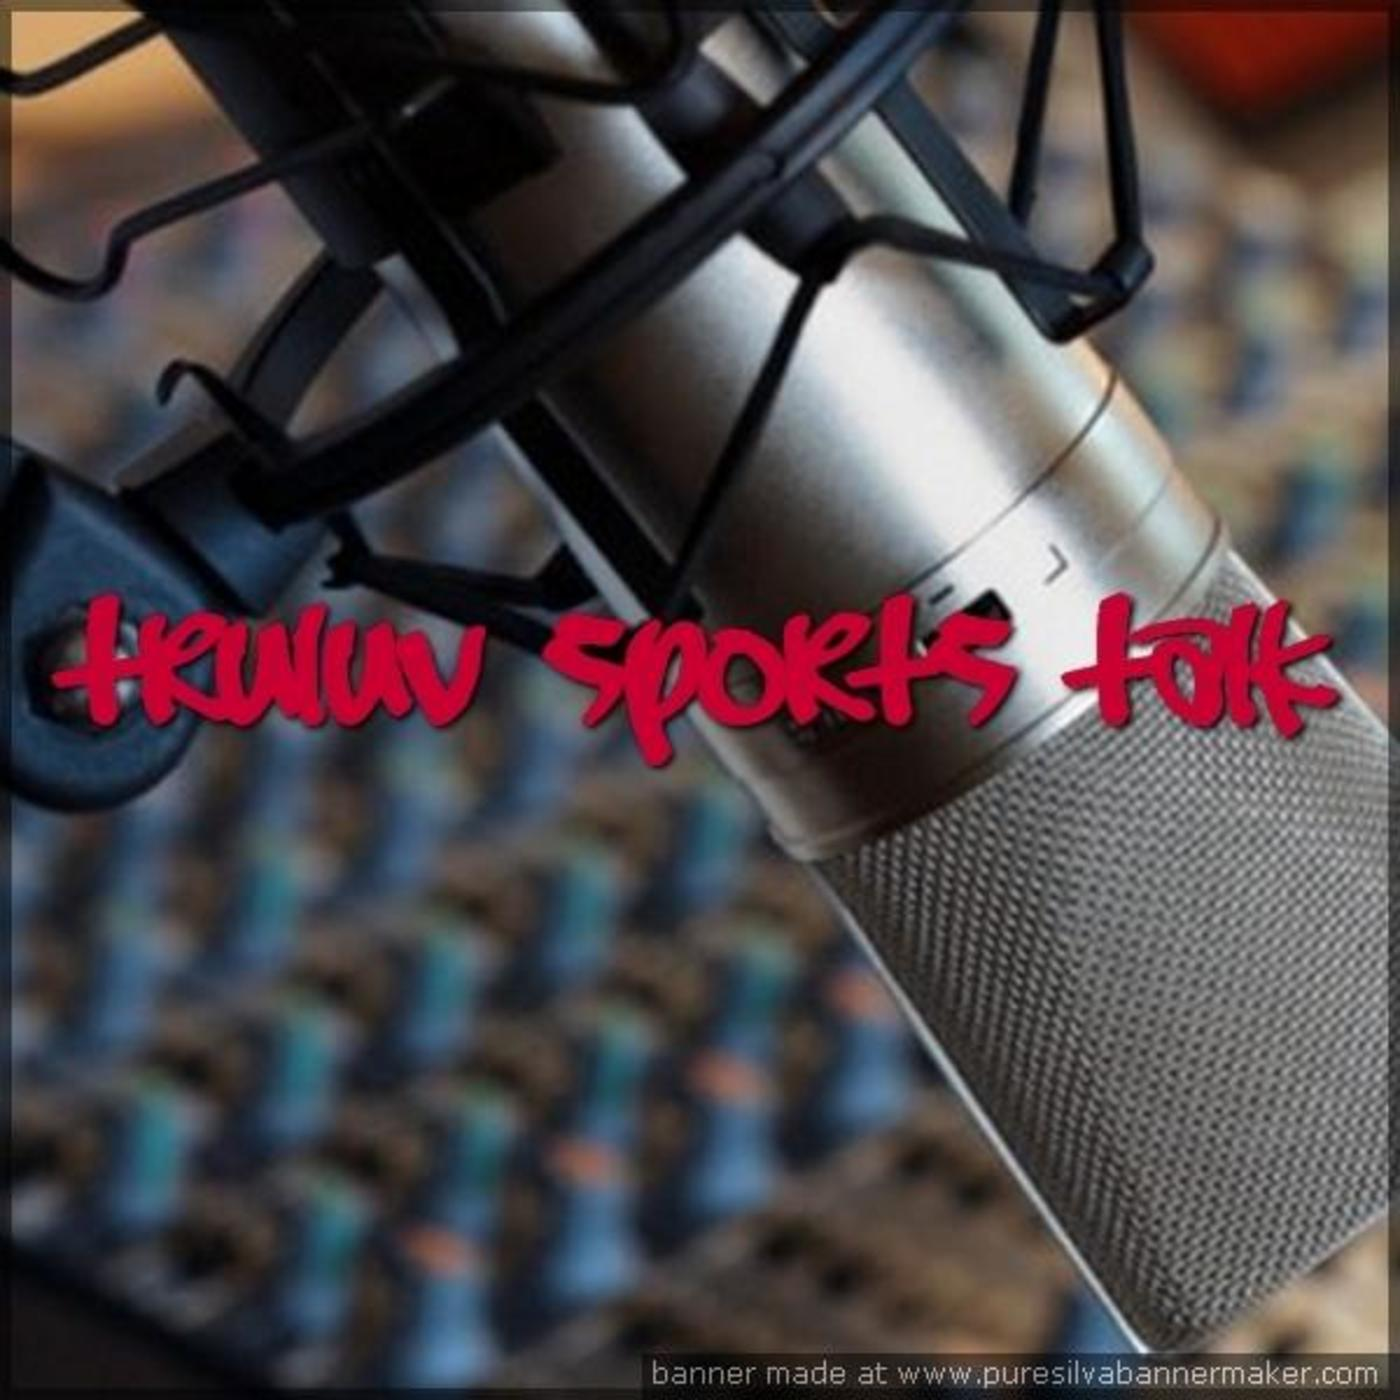 Truluv Sports Talk